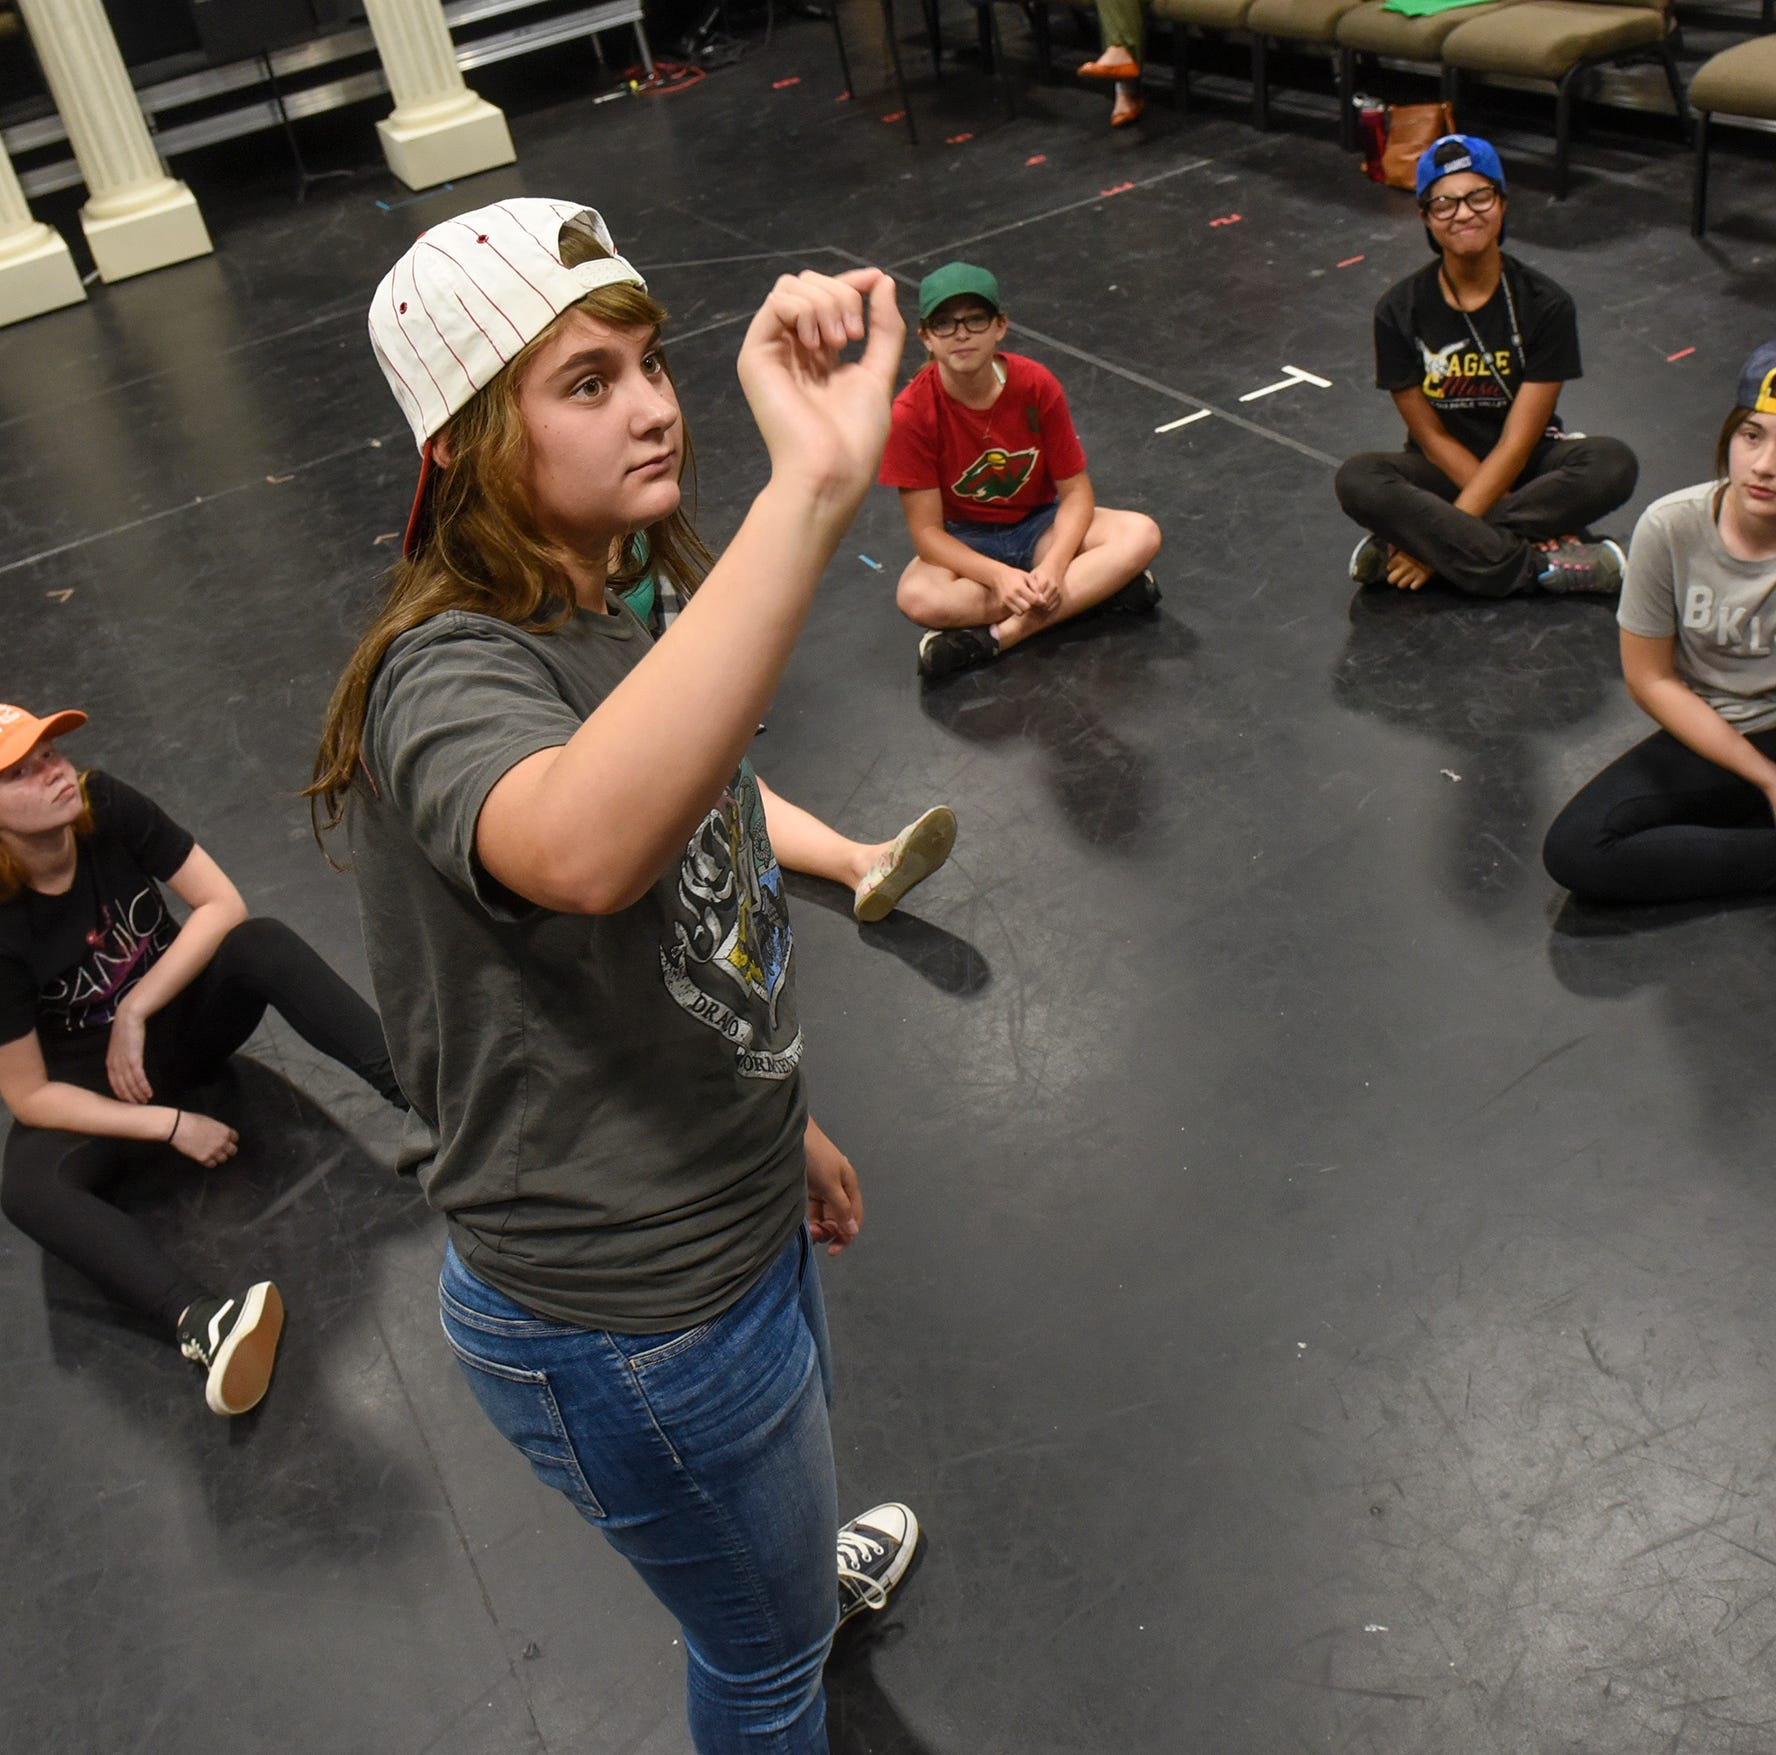 A day in the life of girls: 8 teenagers create, perform own show this weekend